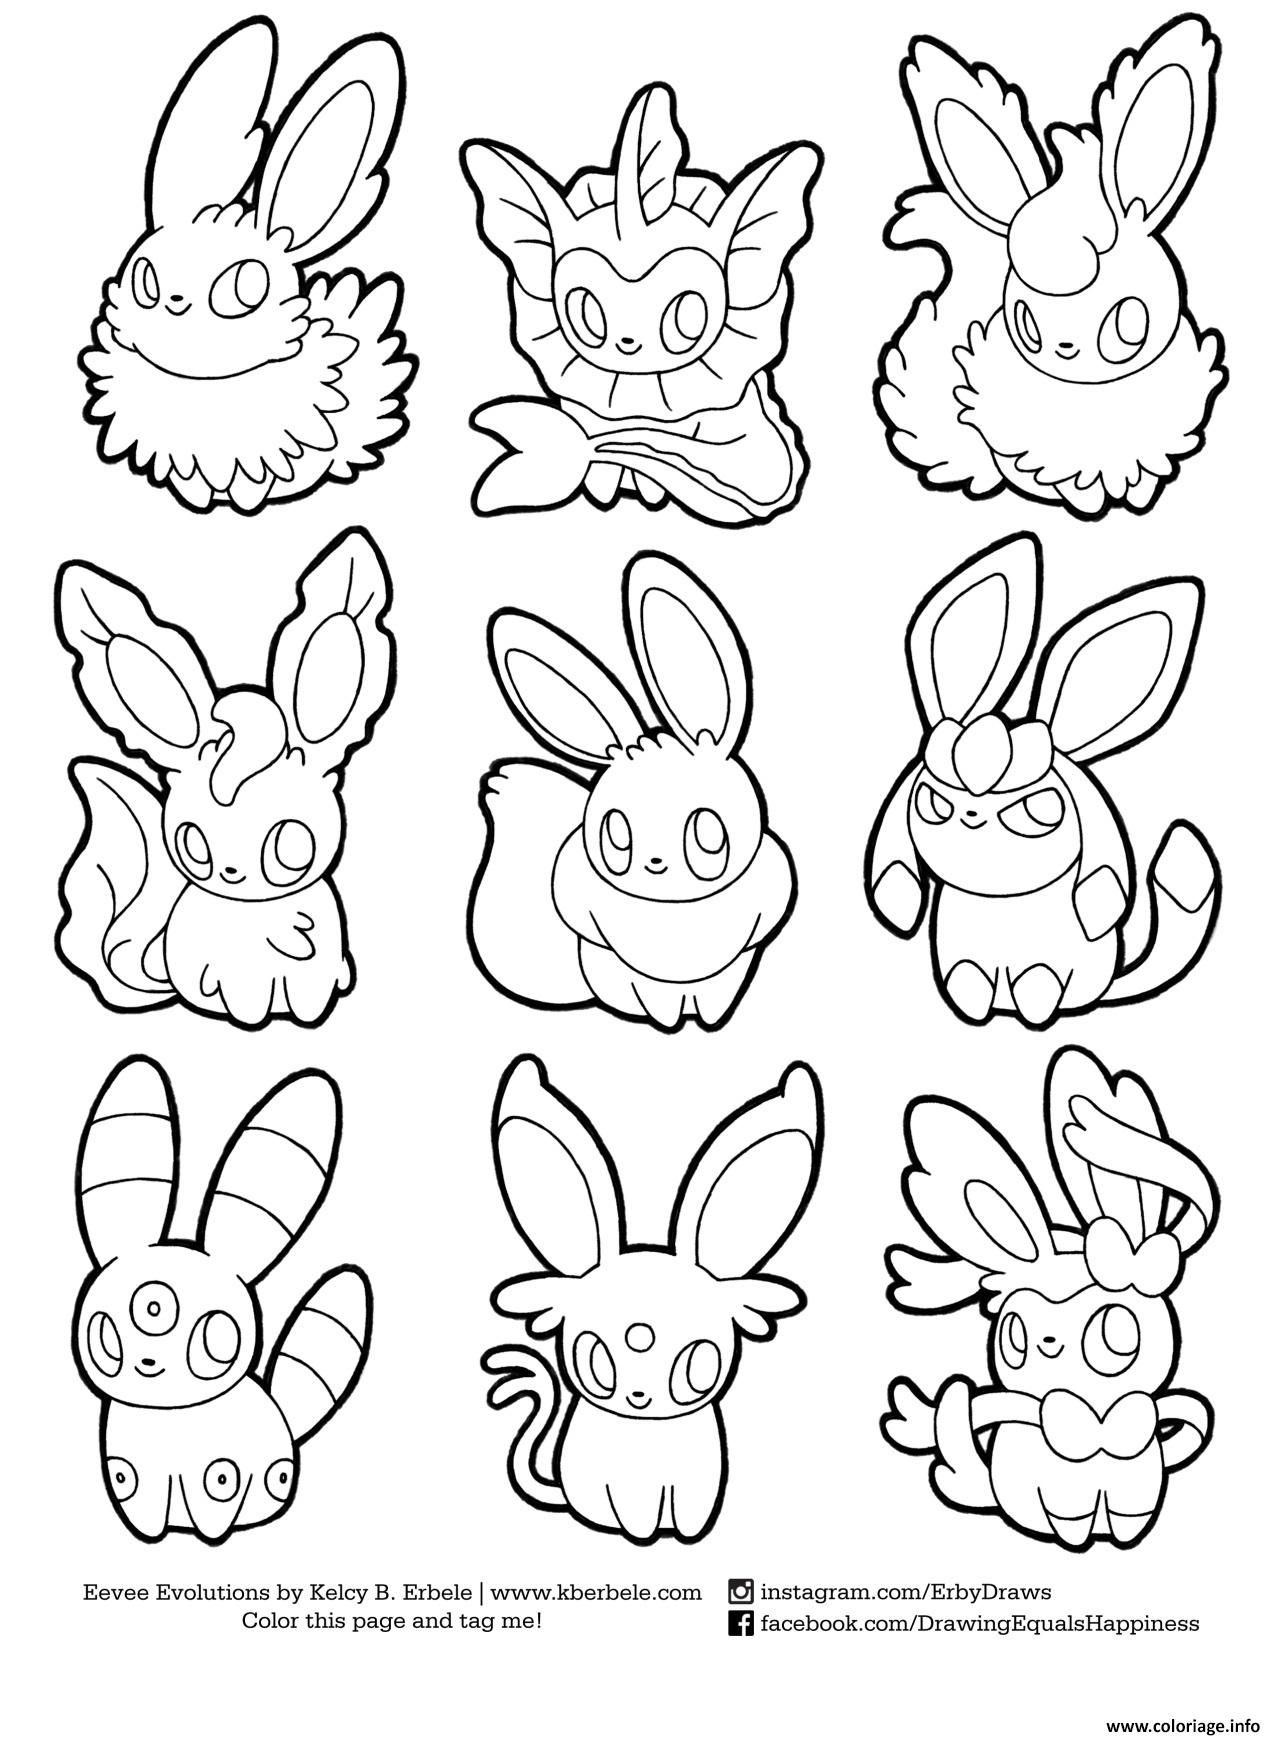 159 Dessins De Coloriage Pokemon A Imprimer